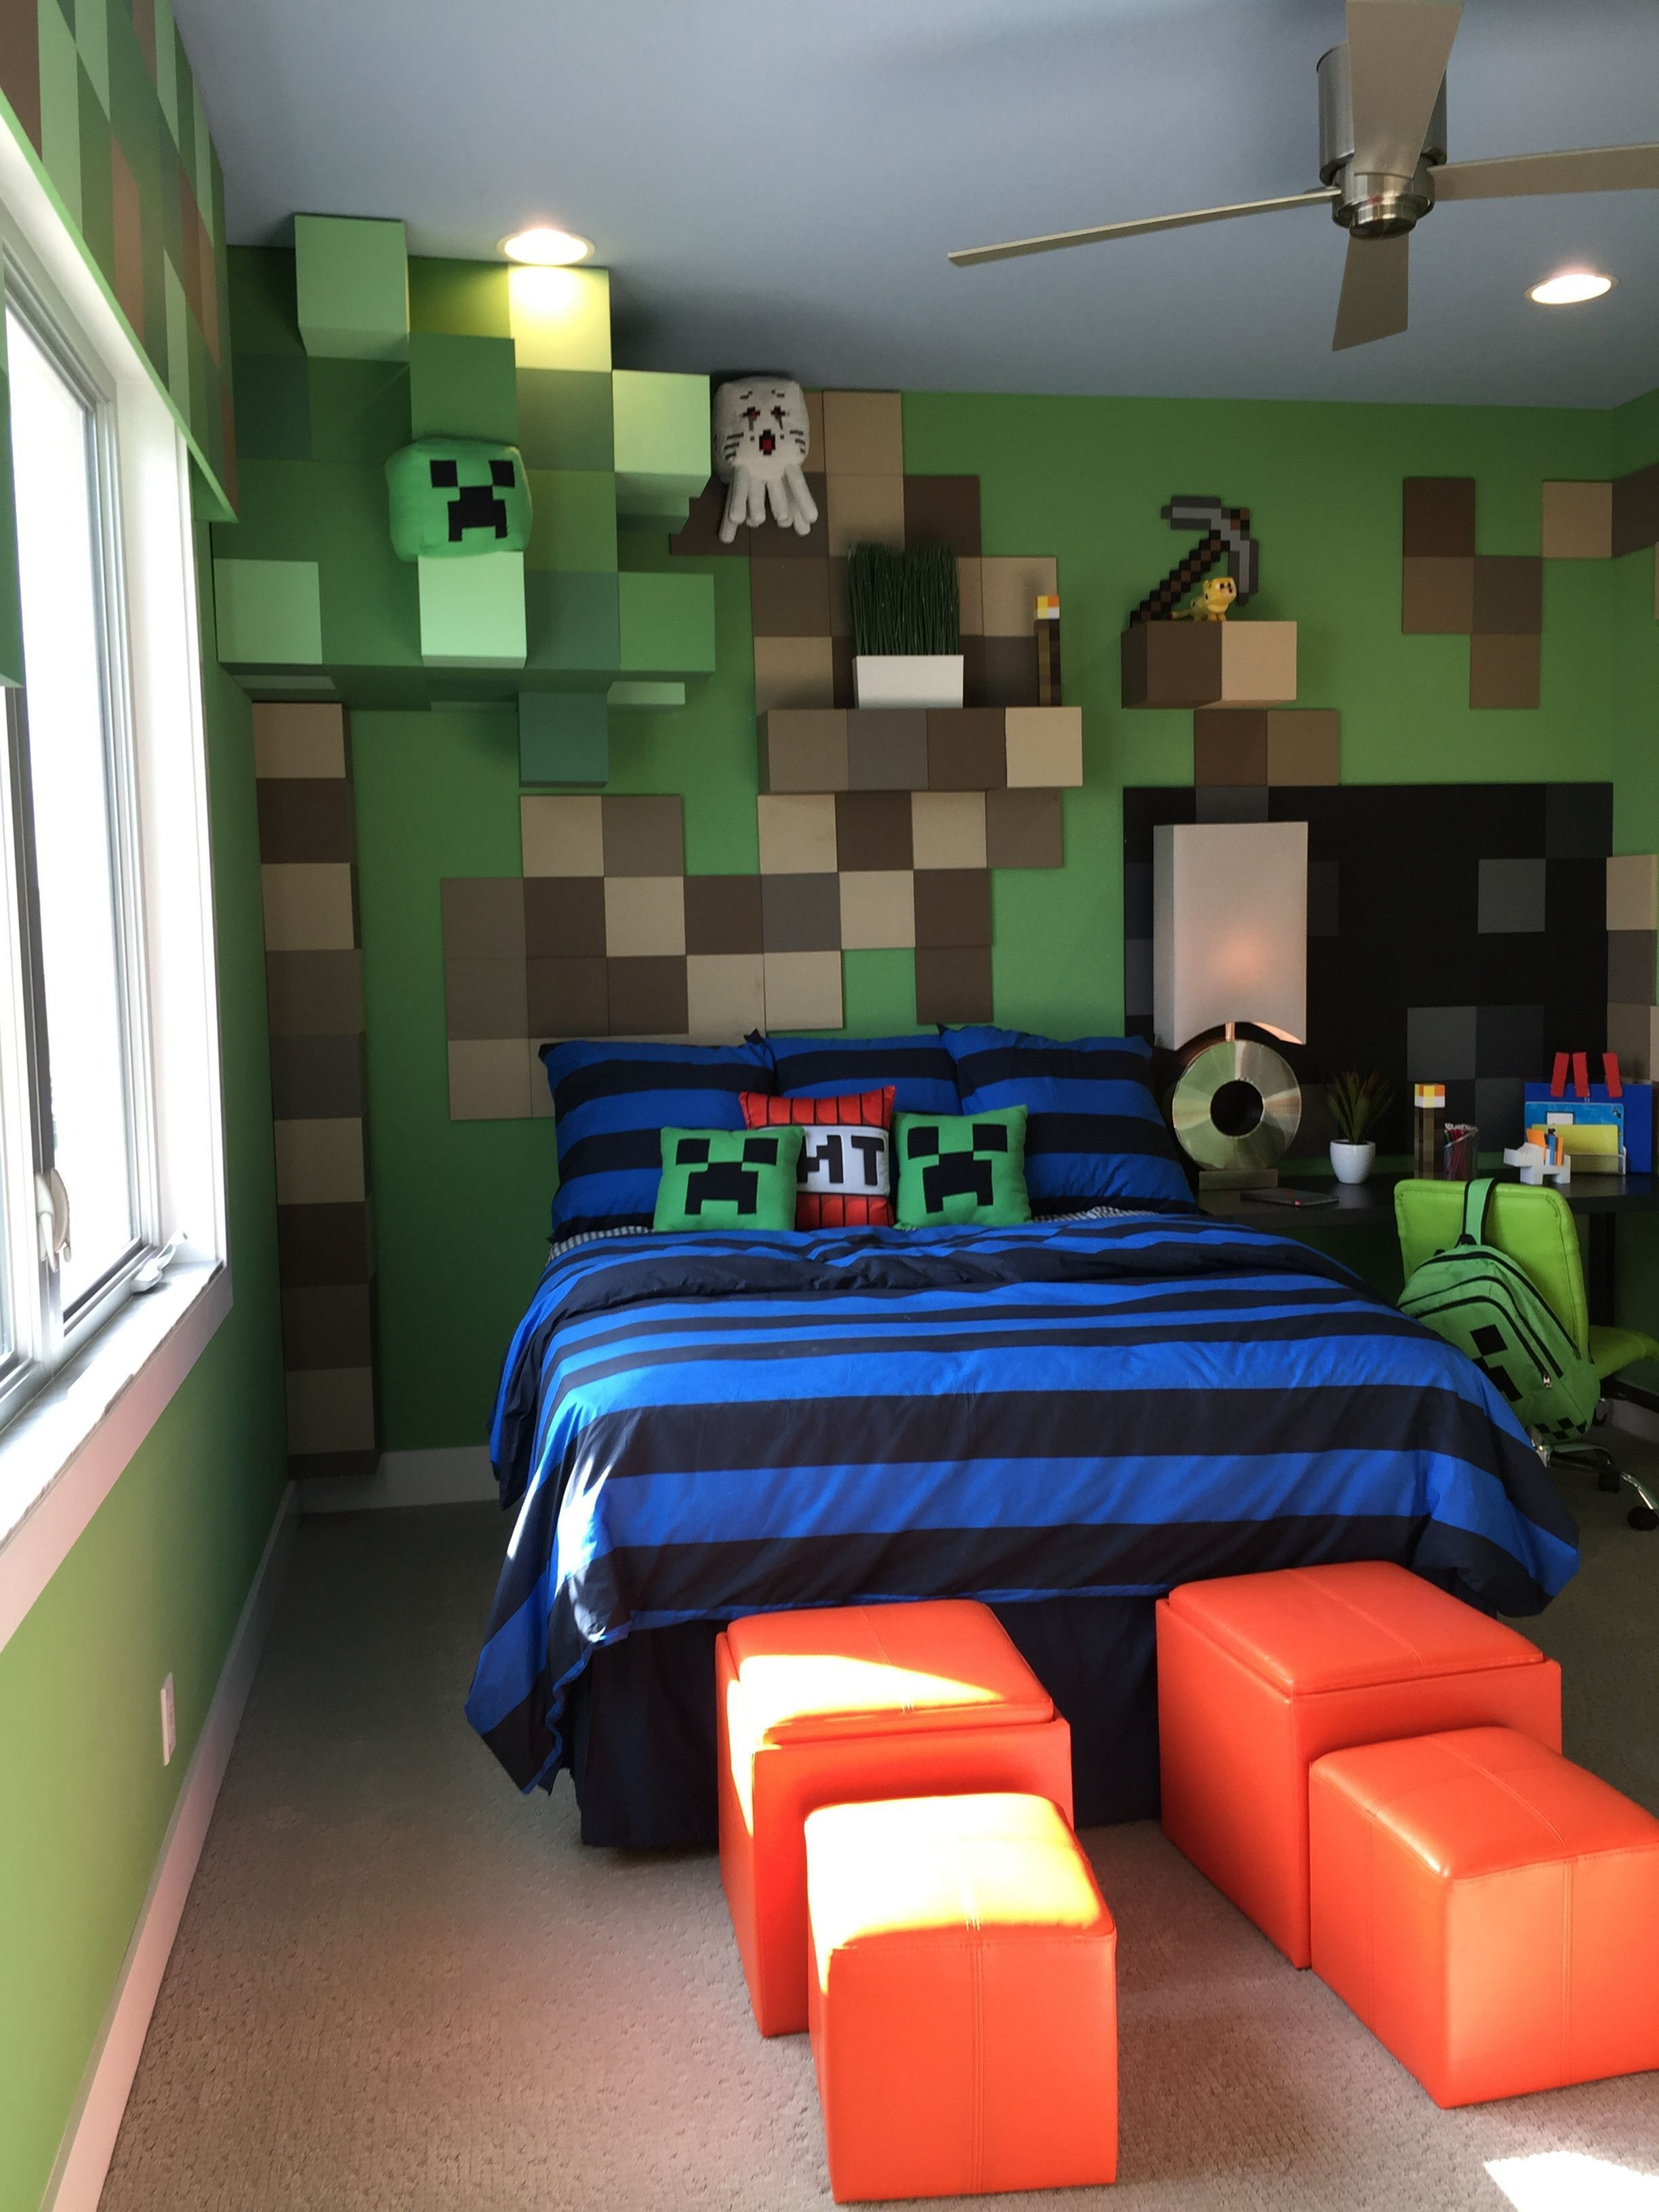 Teenage Boys Bedroom Design With Minecraft Theme 1 images